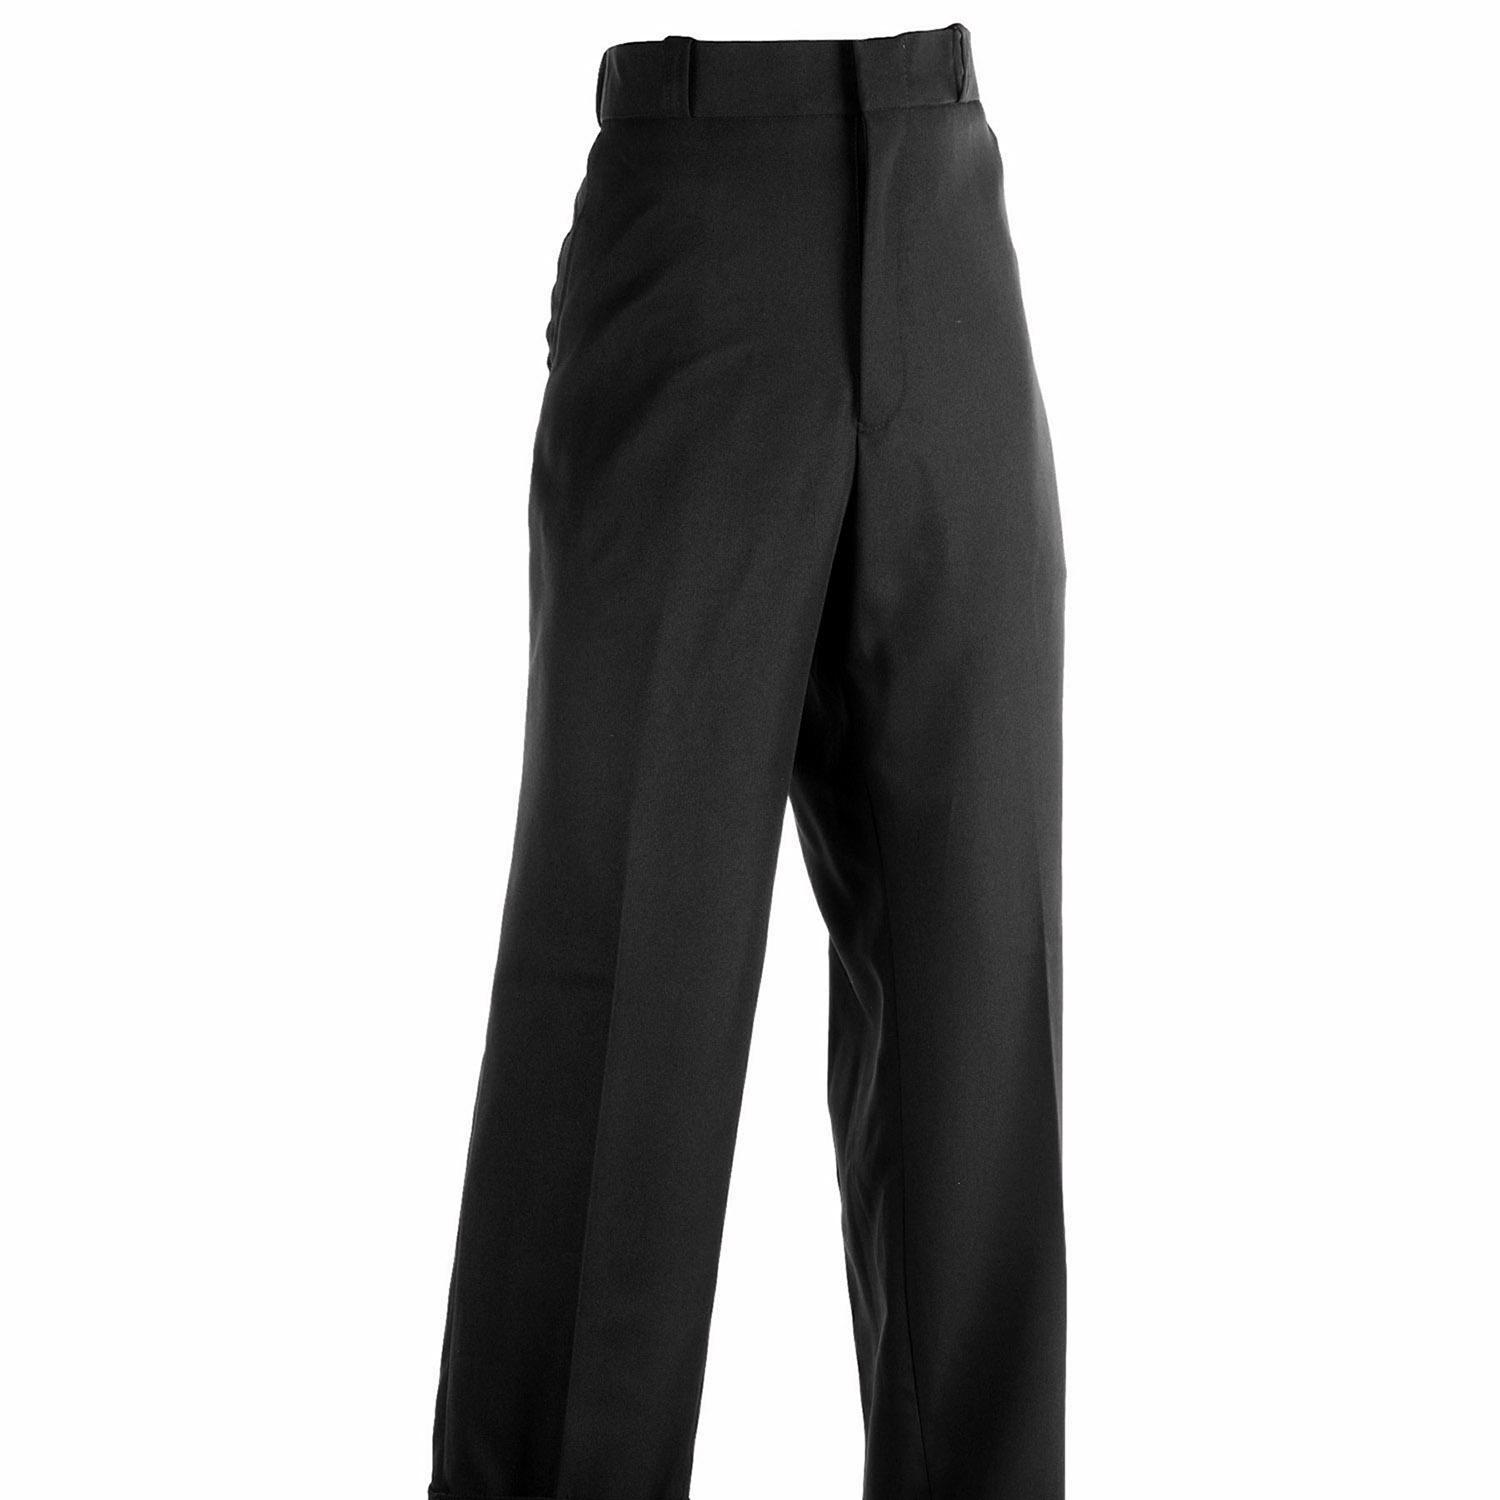 LawPro Polyester Twill Uniform Trousers